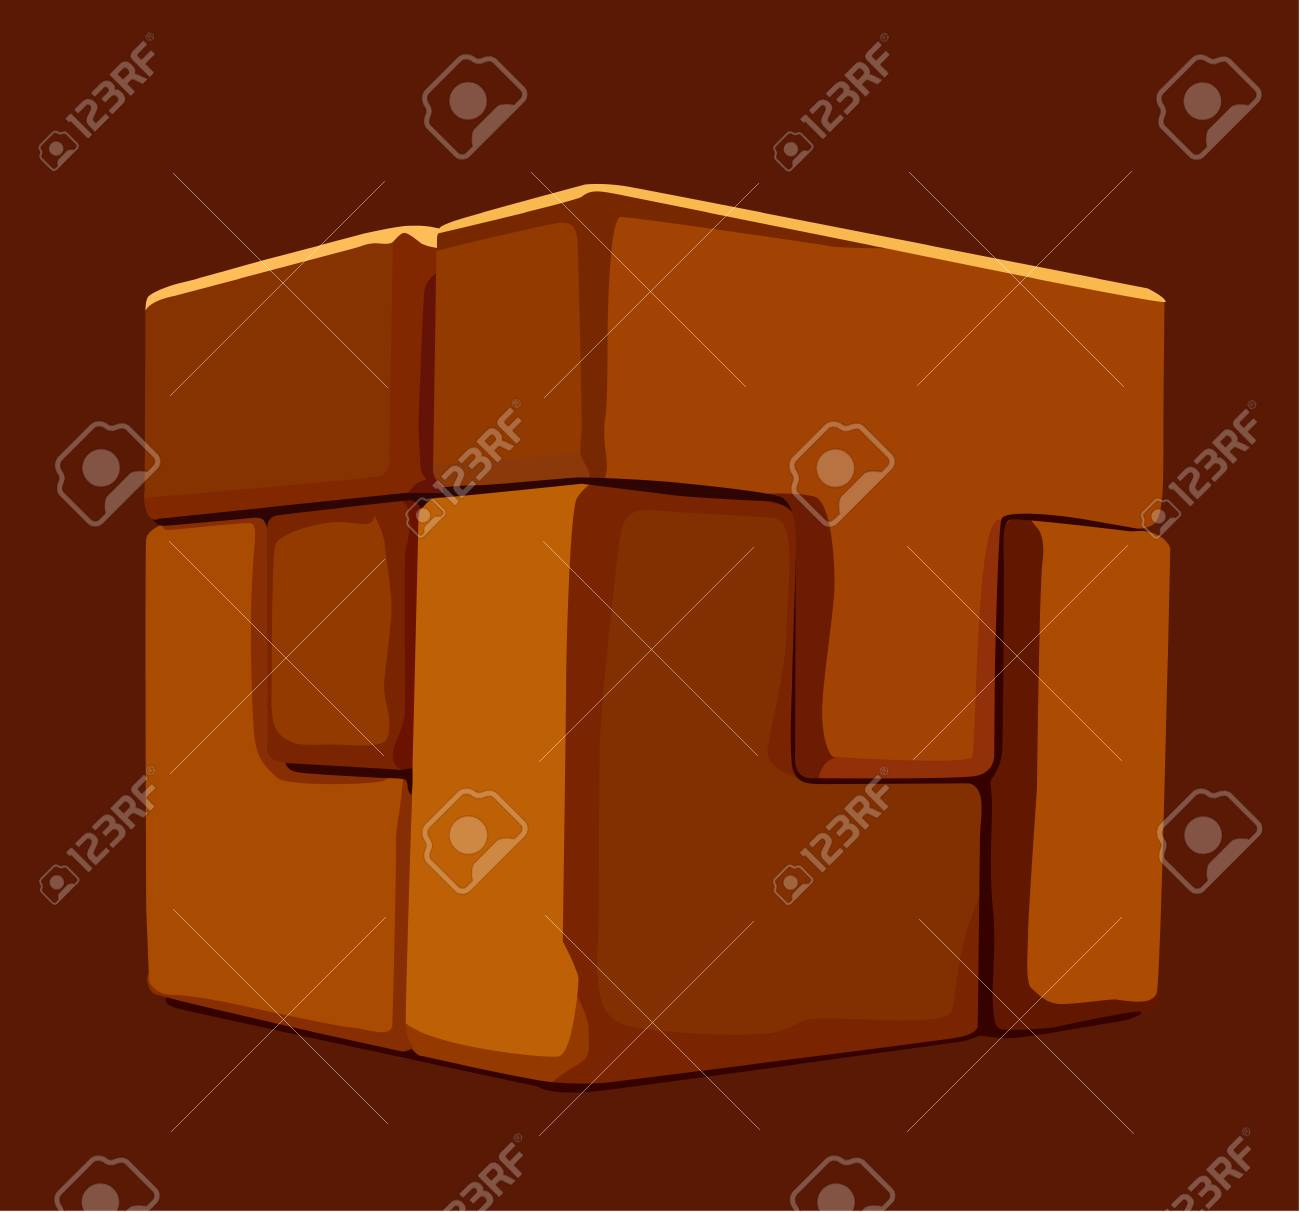 There is puzzle cube of various shapes Stock Vector - 4419844